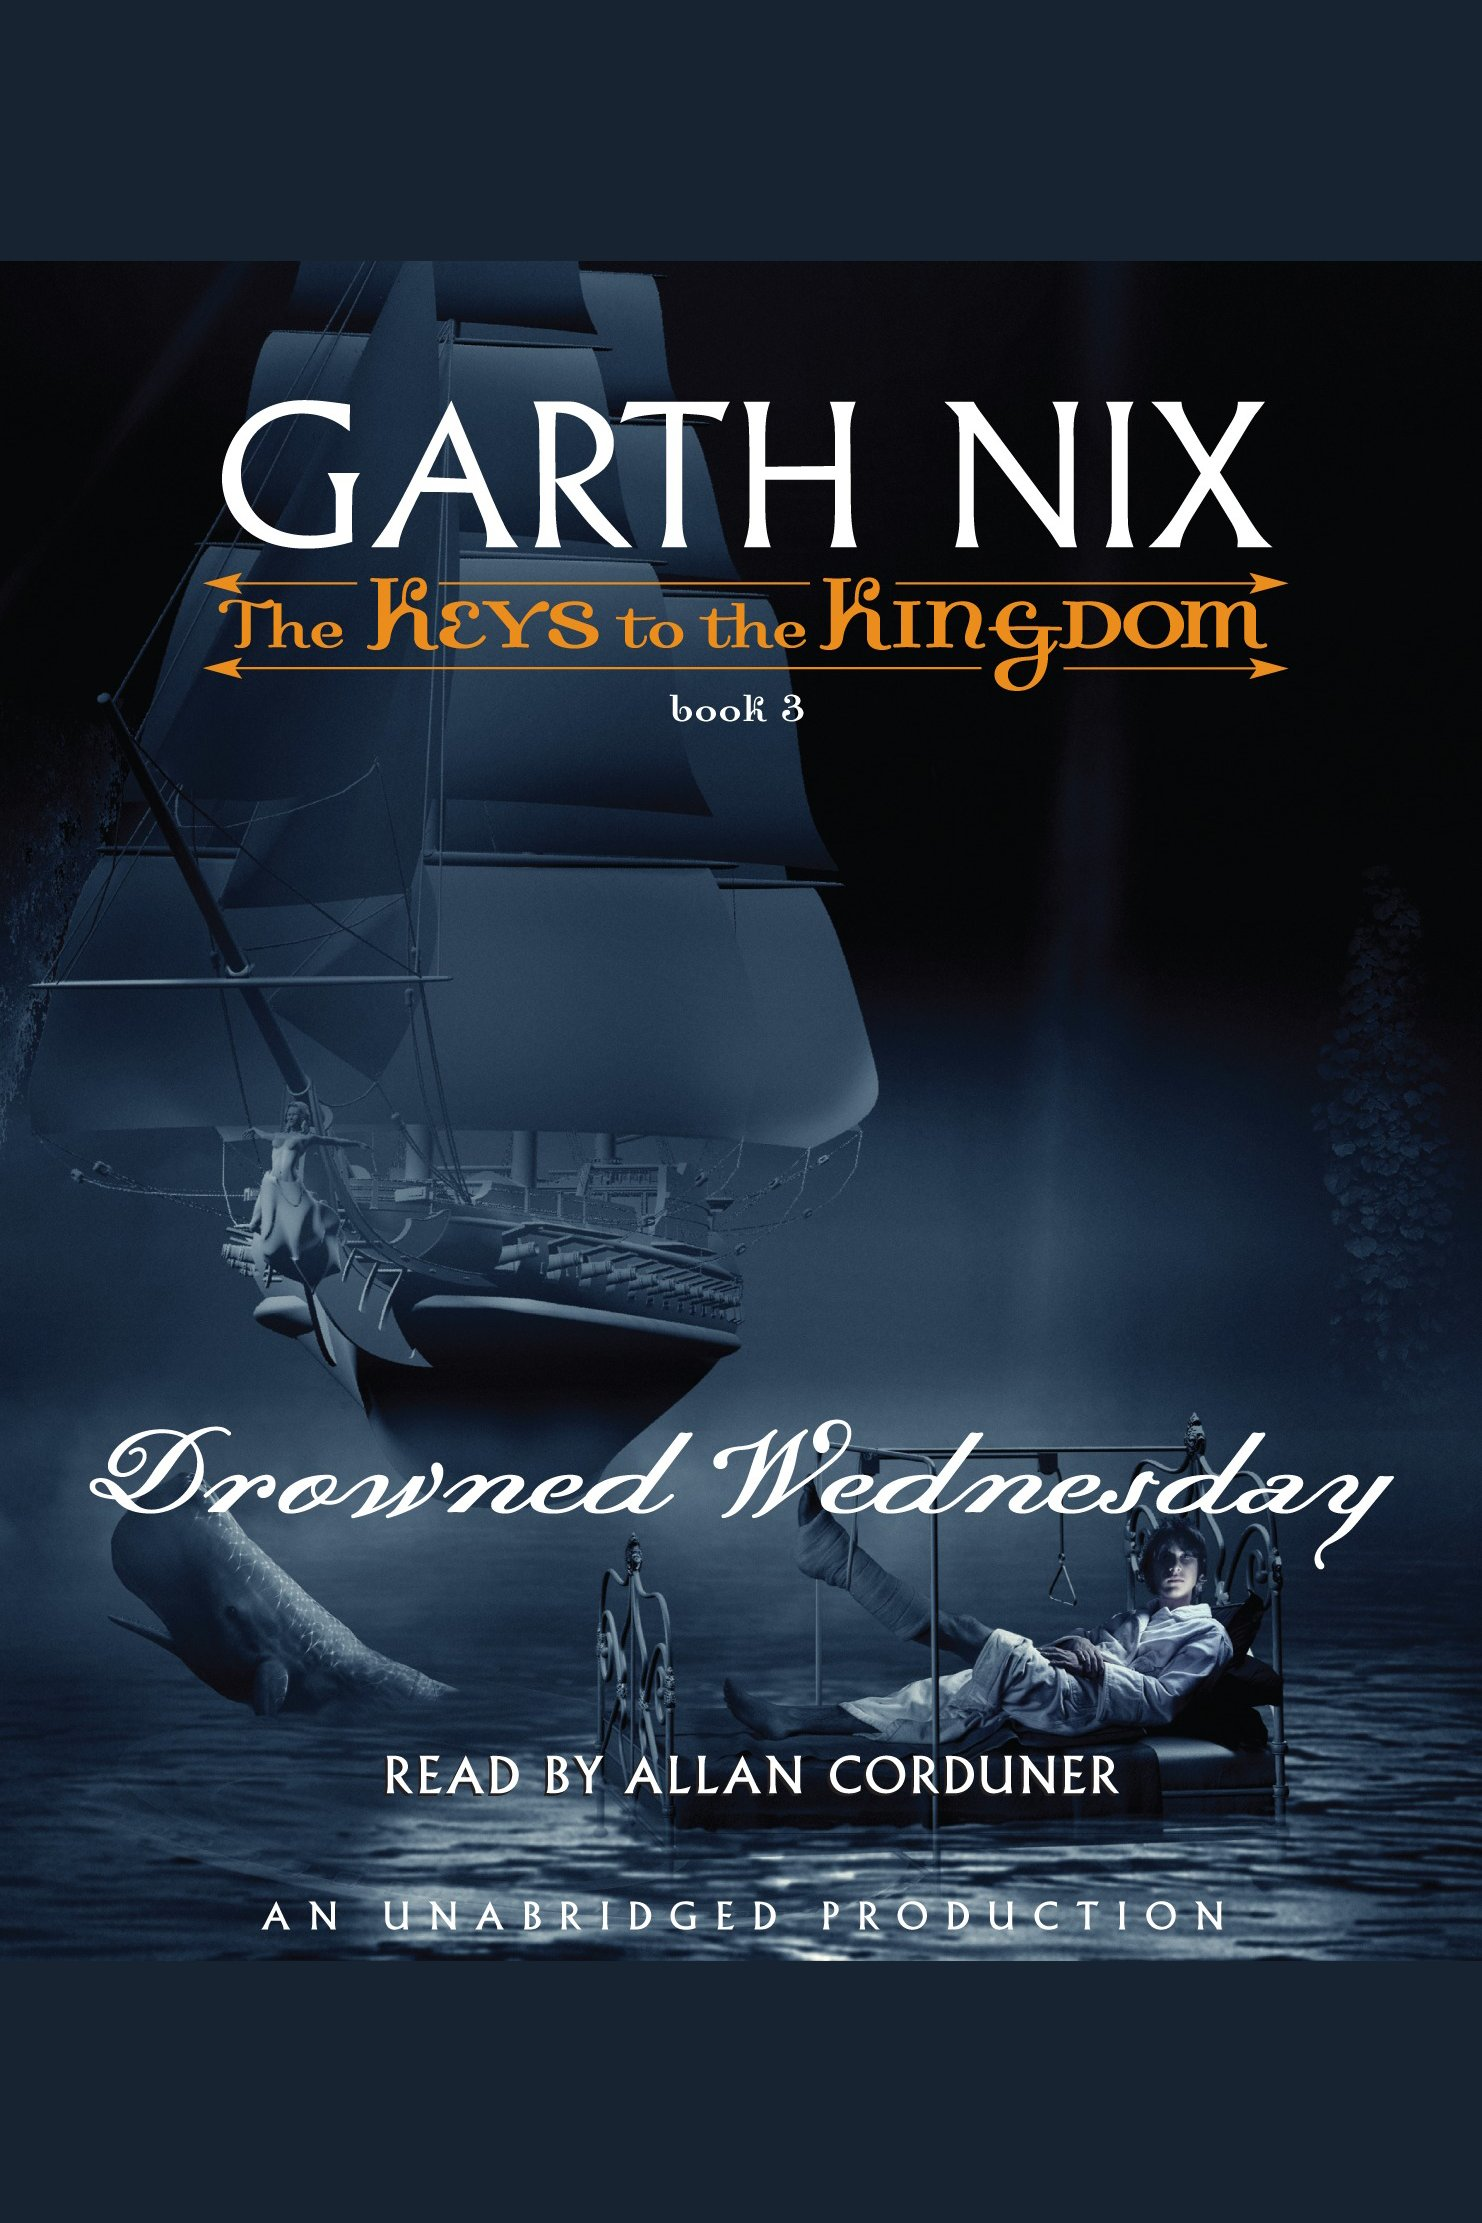 Drowned Wednesday cover image